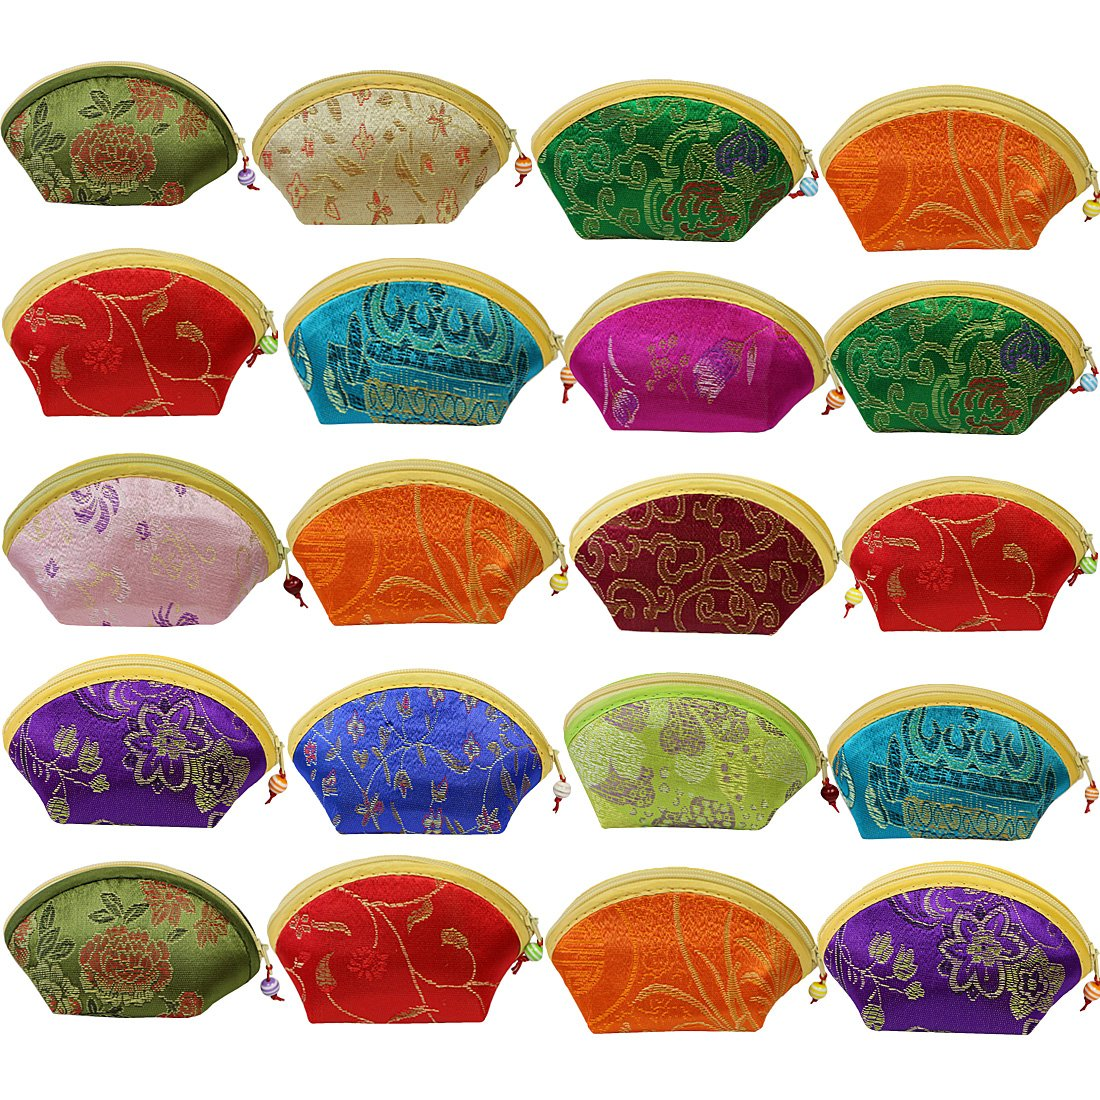 kilofly 20pc Chinese Silk Embroidered Brocade Gift Jewelry Coin Purse Pouch Set by kilofly